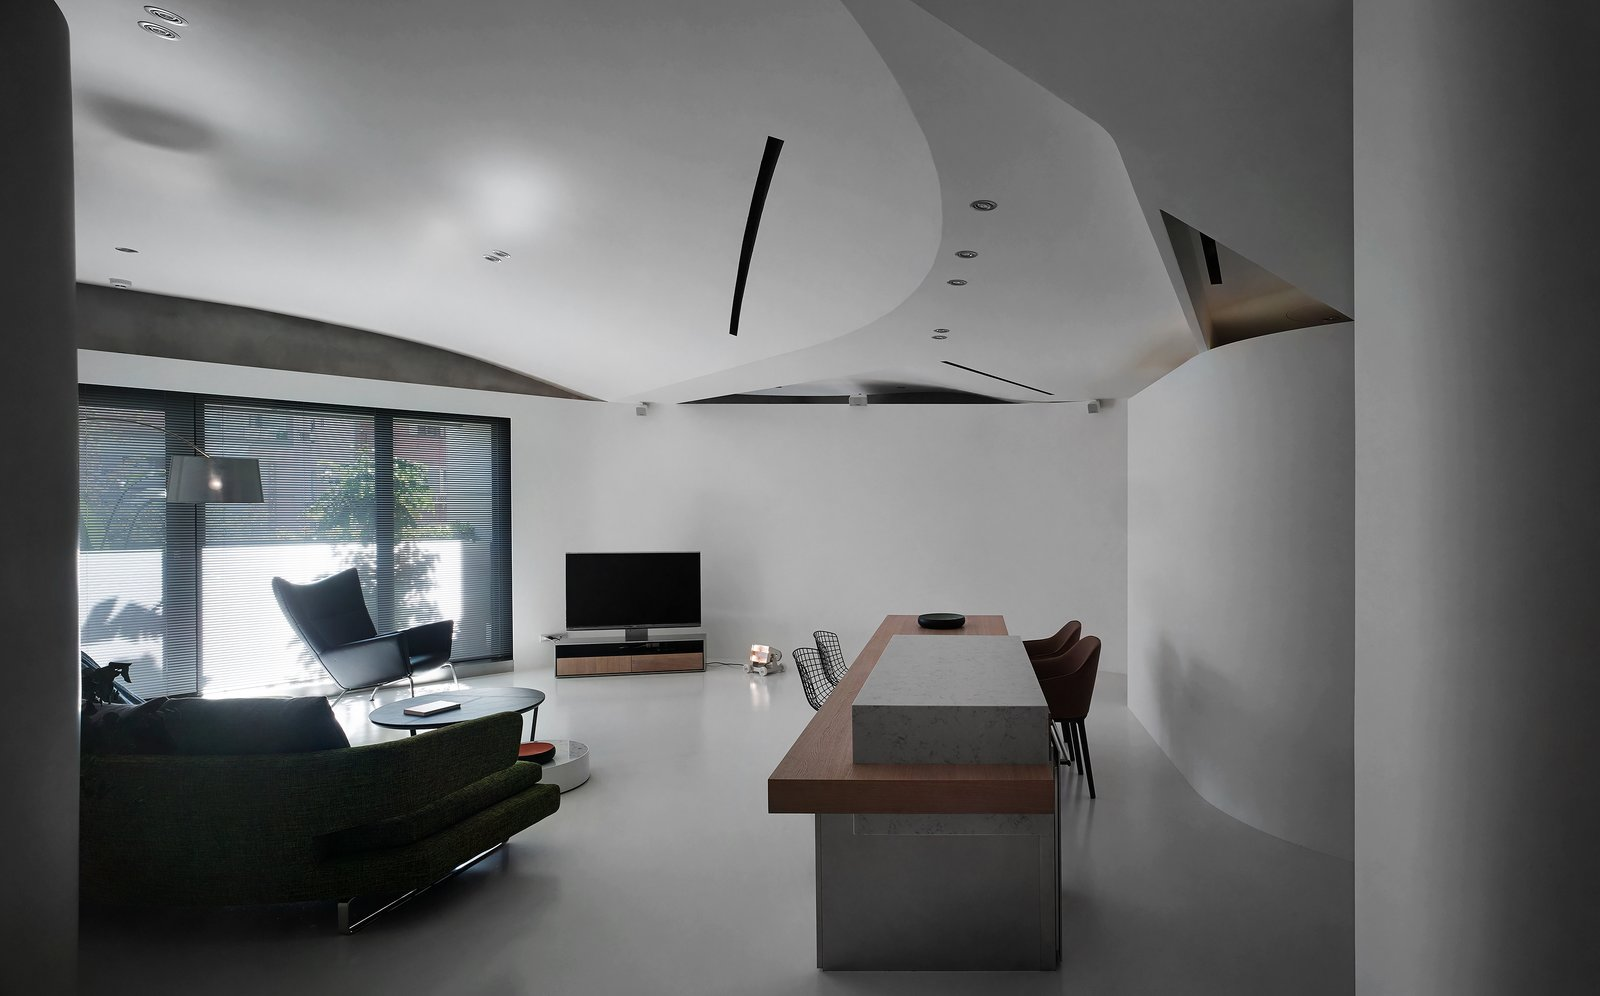 The ceiling is a composite of several curved surfaces, the seams of which implicitly implying the activities underneath.  Tagged: Living Room, Chair, Sofa, Bar, Table, Lamps, Ceiling Lighting, Wall Lighting, and Concrete Floor.  Fluid House by shi-chieh lu